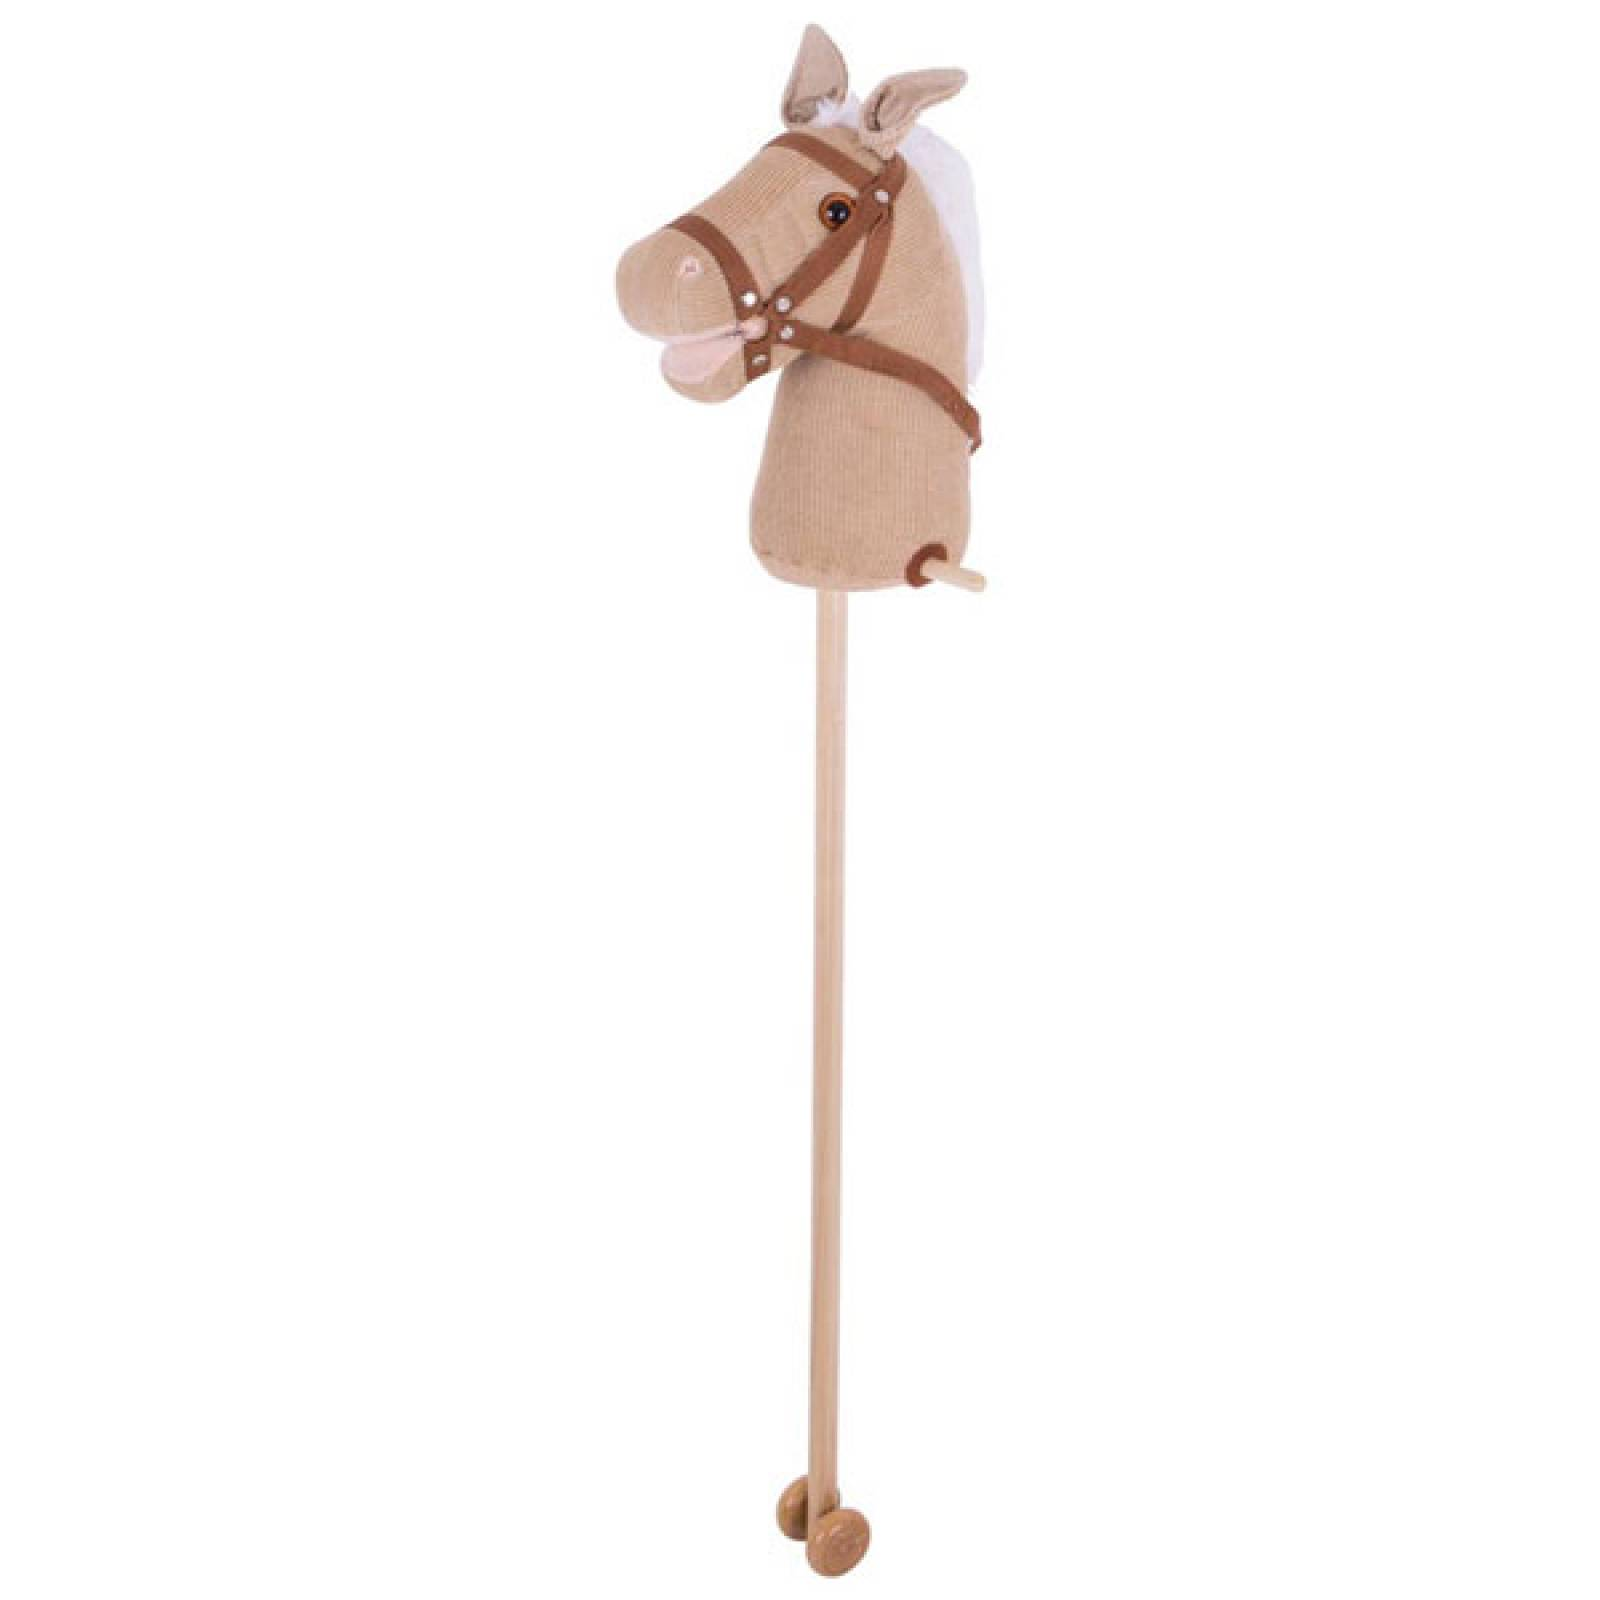 Soft Tan Corduroy Fabric Hobby Horse 3+